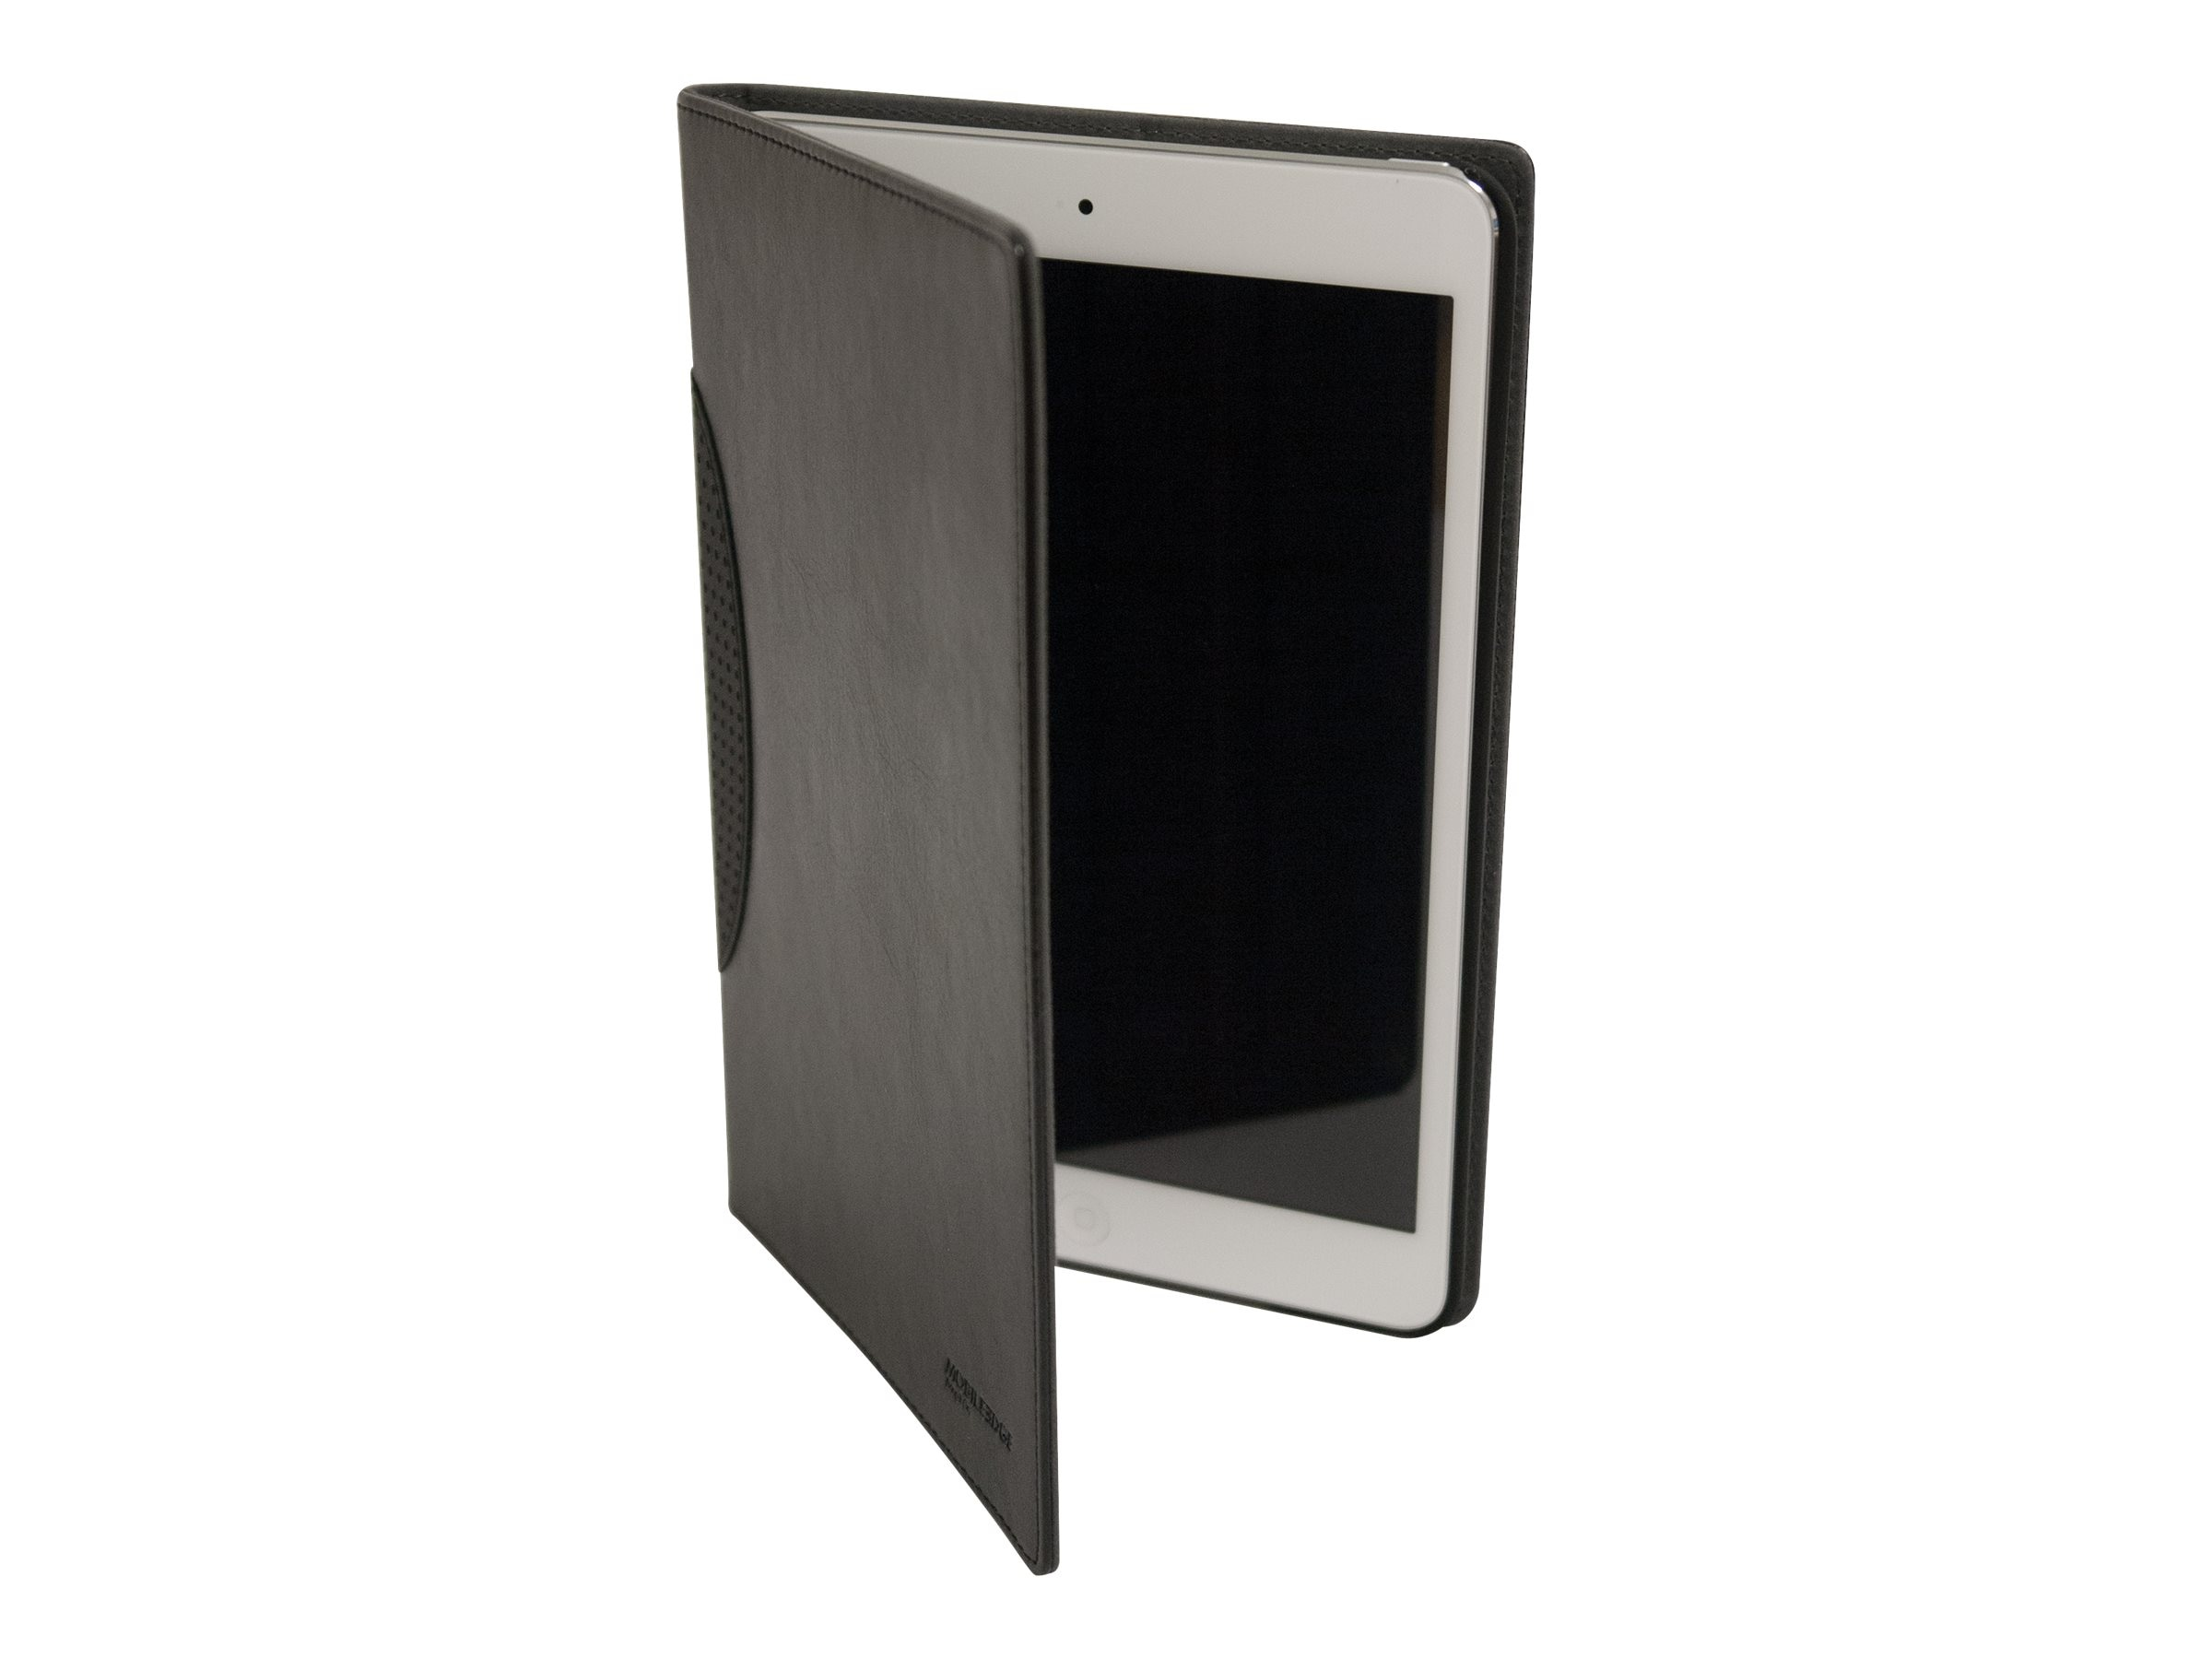 Mobile Edge Deluxe Slimfit for iPad Air, MEIAC1, 17450817, Carrying Cases - Tablets & eReaders